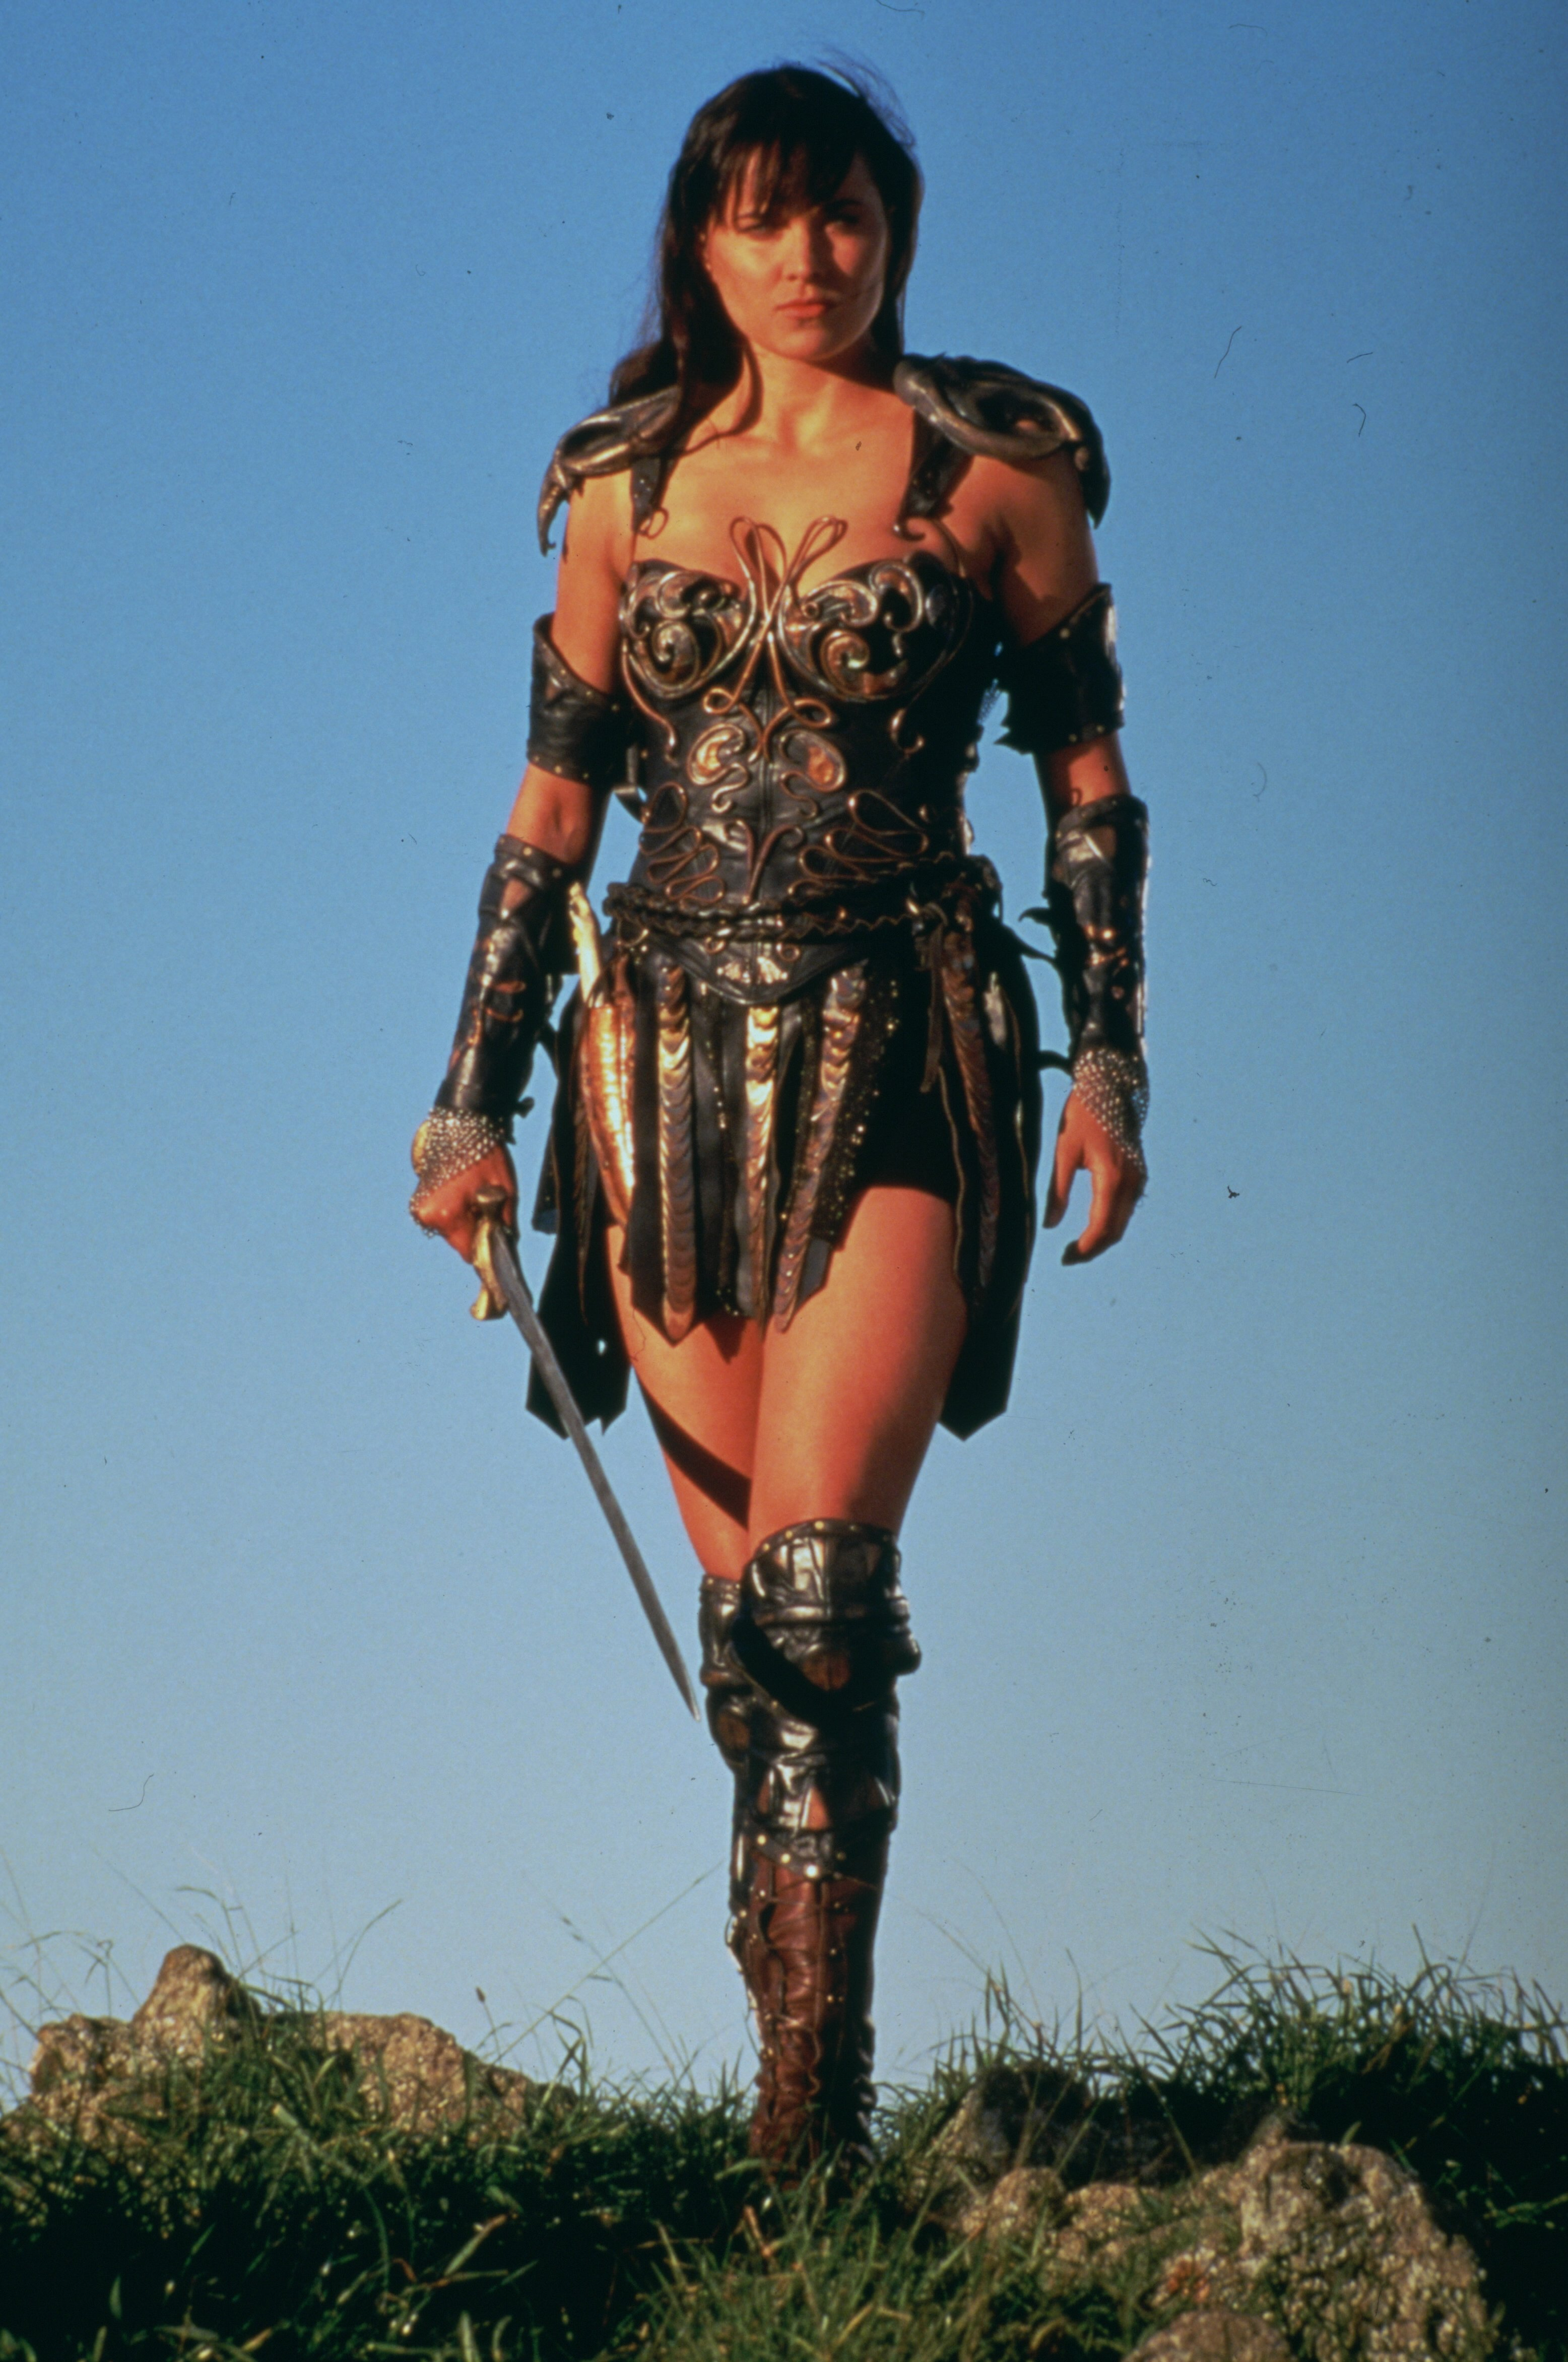 Xena-big-size-xena-warrior-princess-35948592-3112-4688 jpg Xena    Xena Warrior Princess Angry